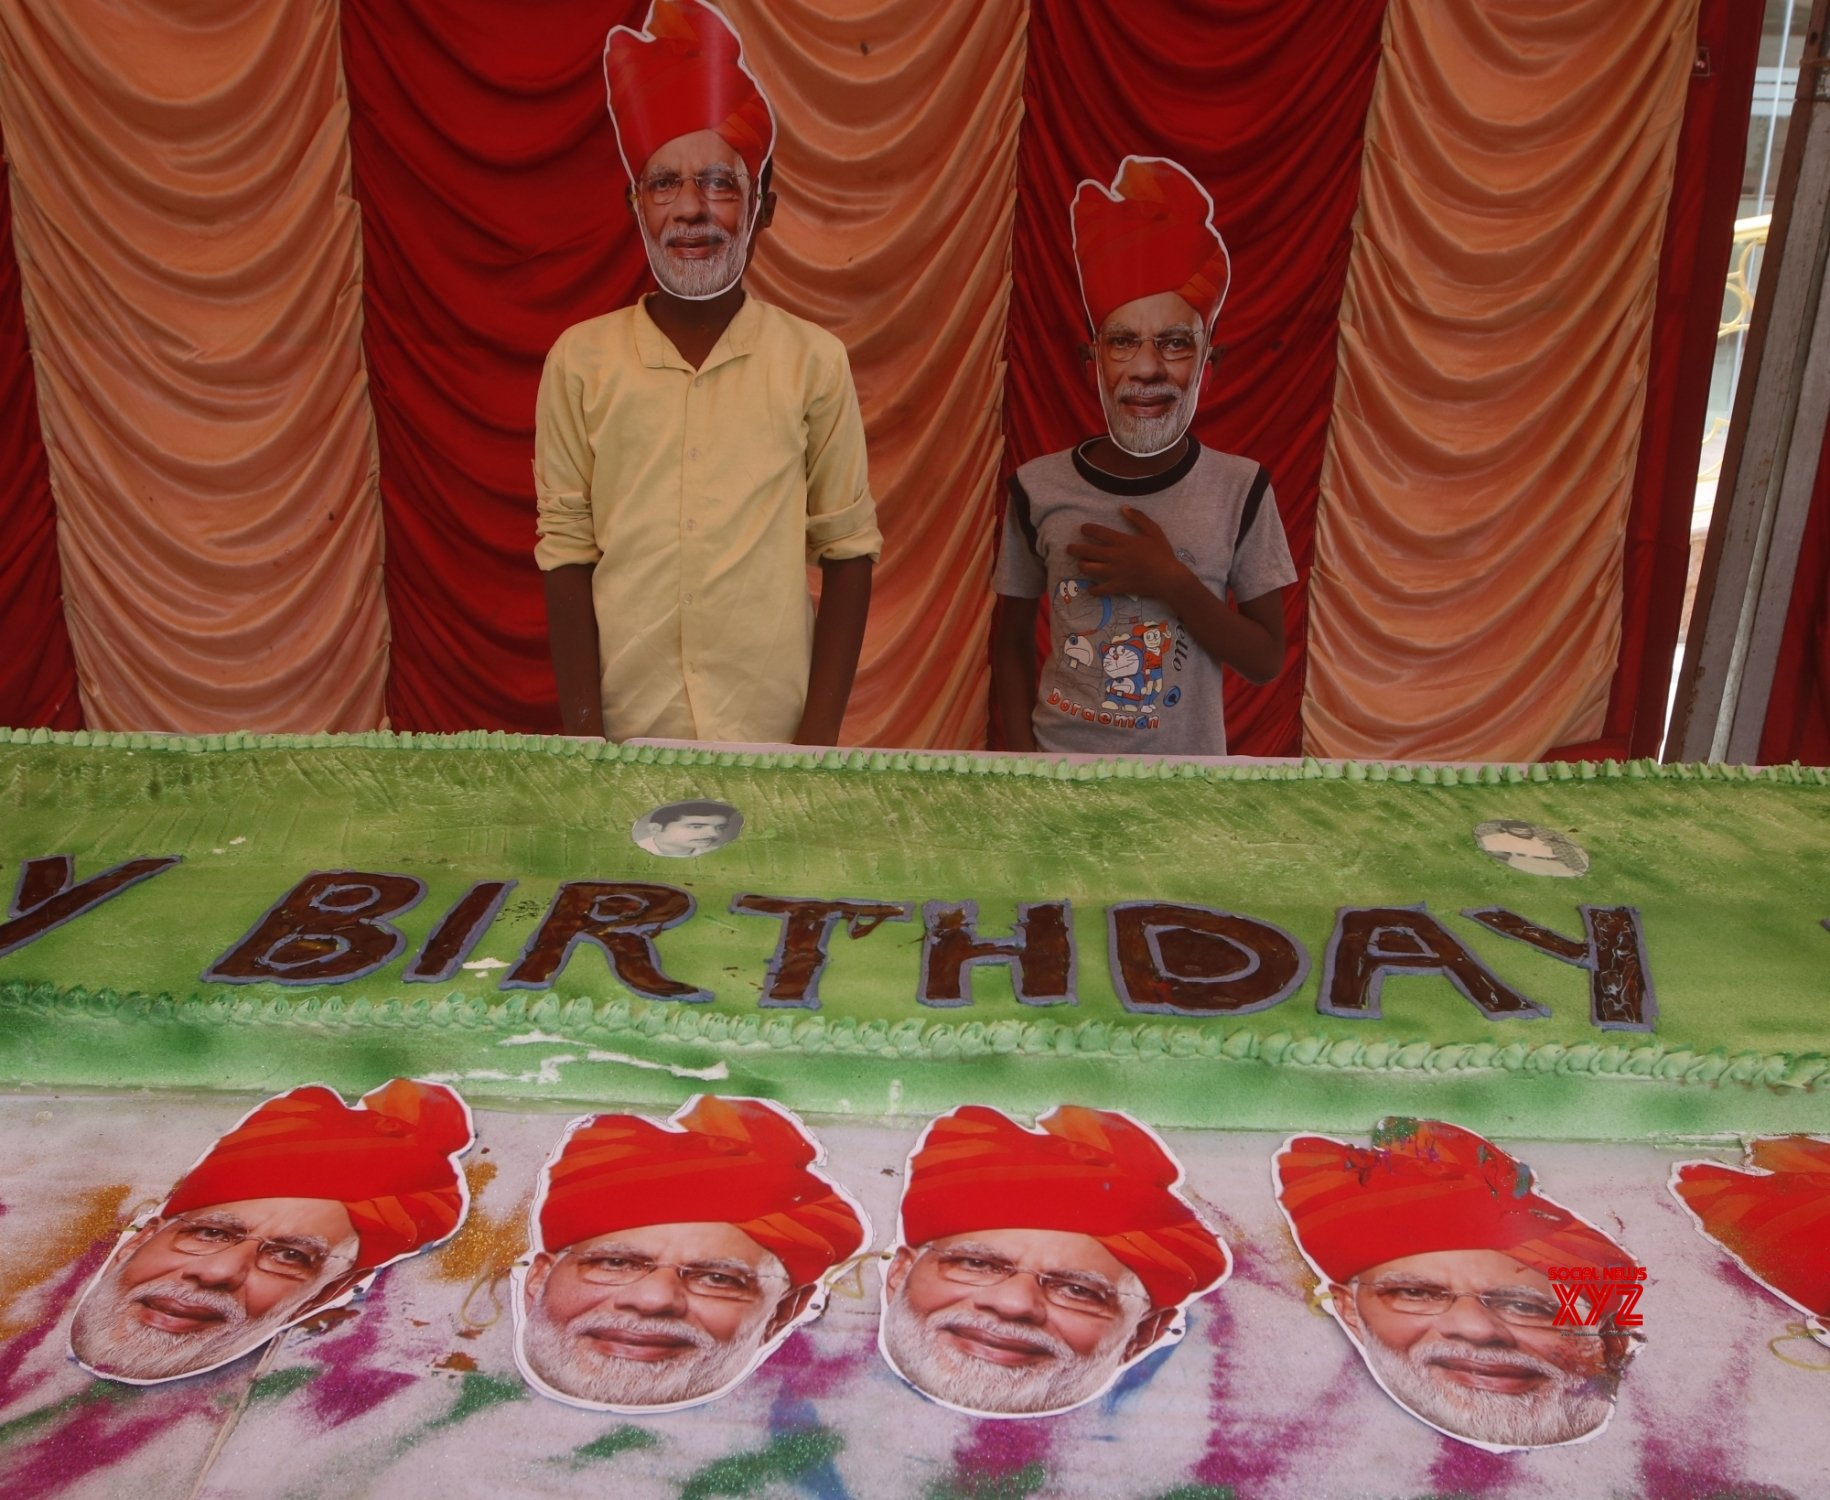 Chennai: BJP workers celebrate PM Modi's 70th birthday #Gallery